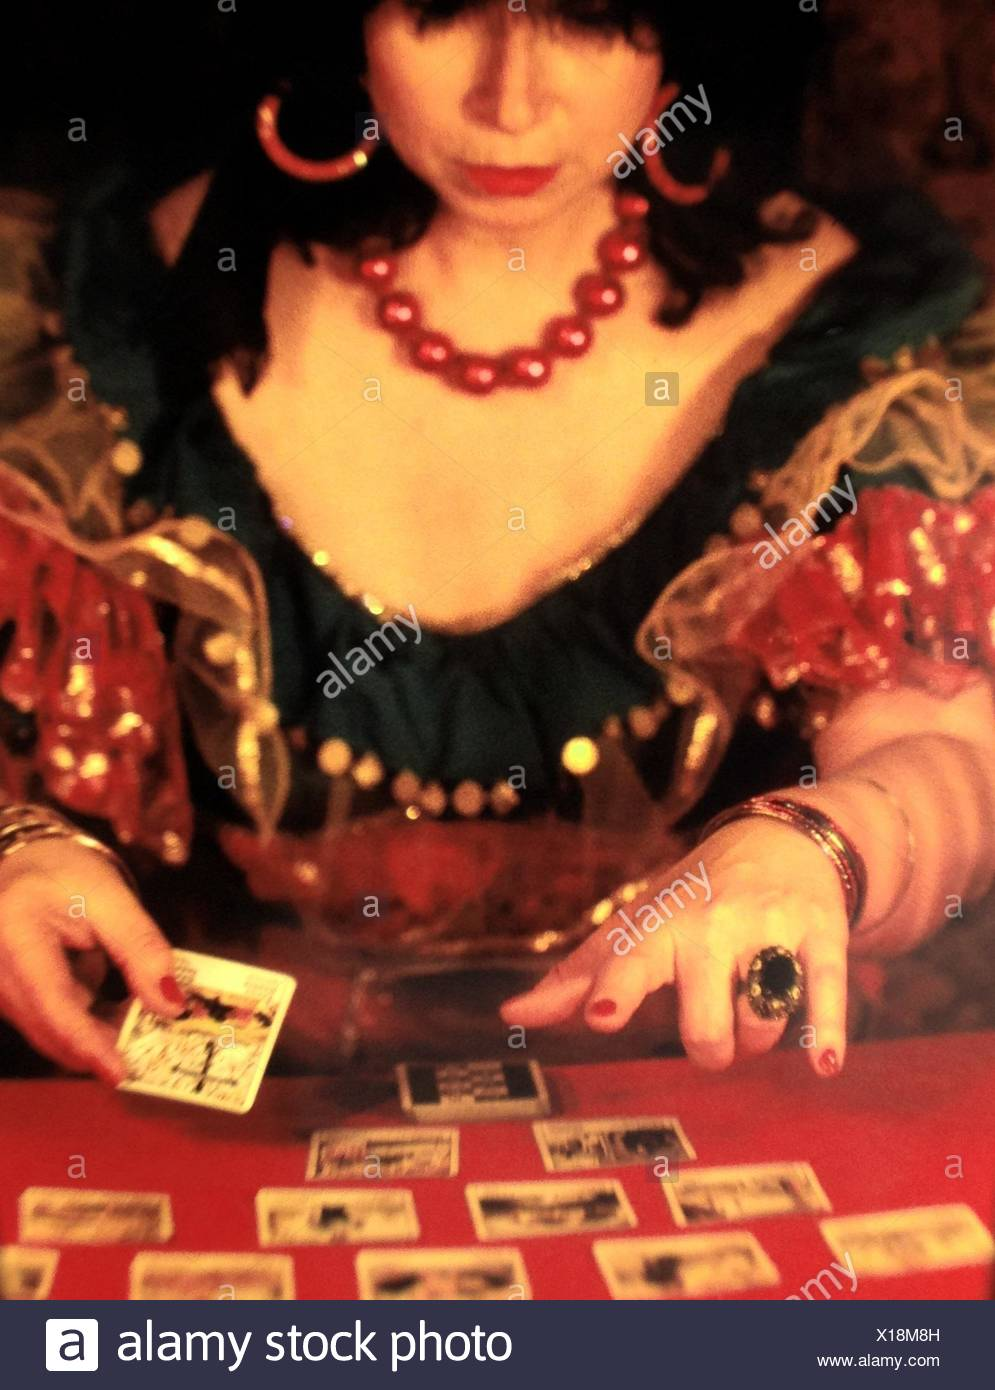 Close-Up Of Woman With Tarot Cards On Table - Stock Image